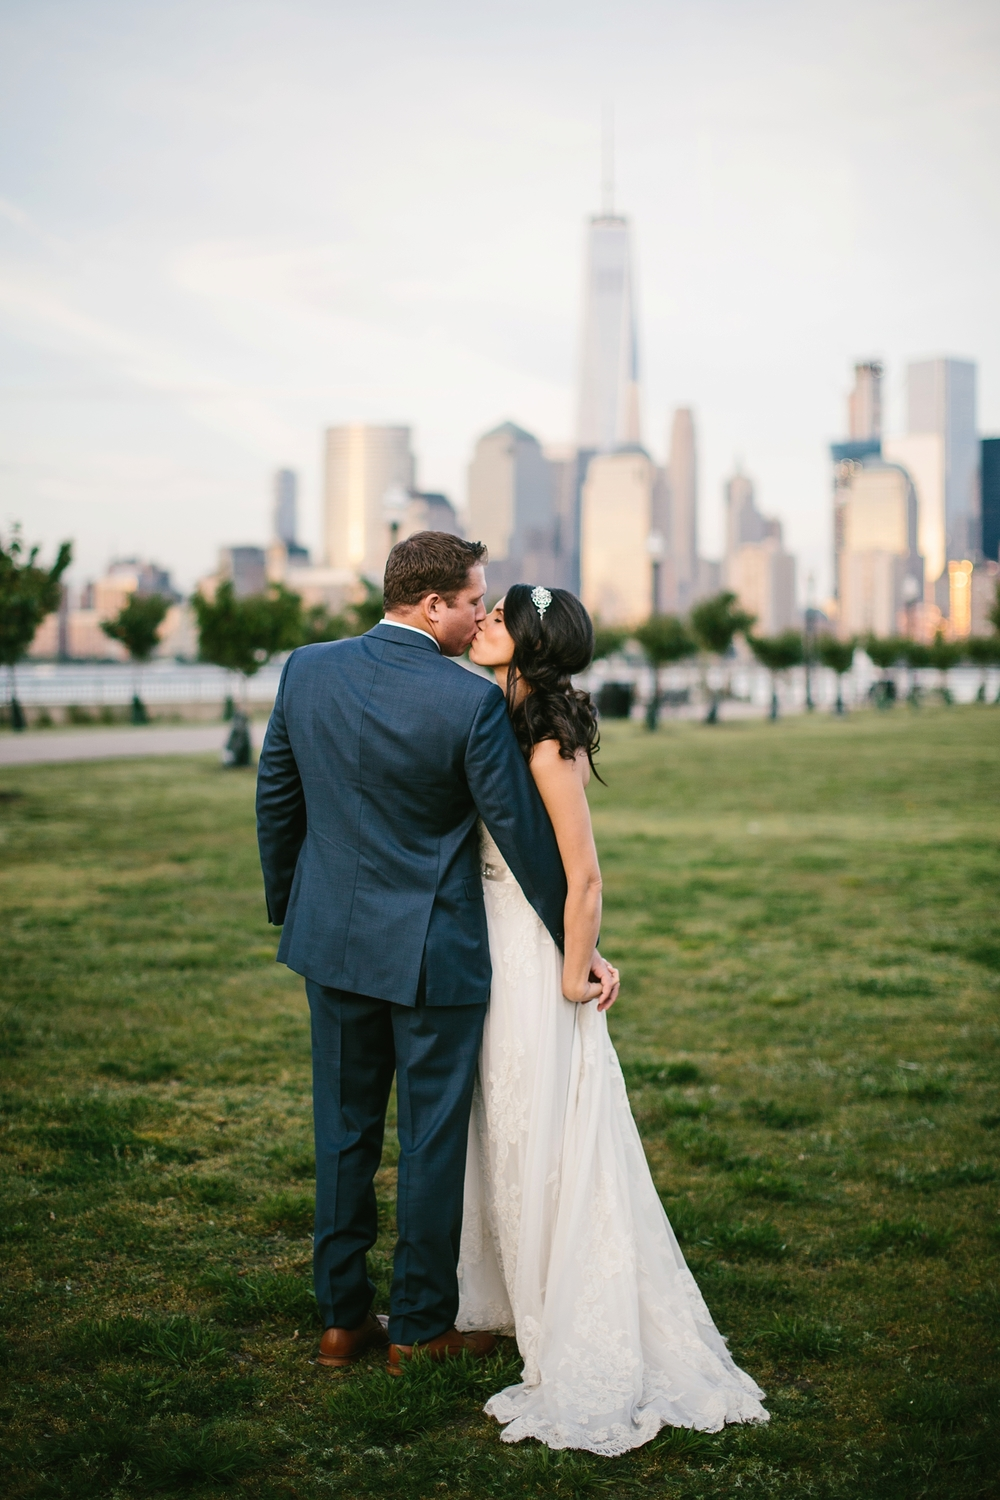 liberty-state-park-wedding-photographer-ny-nj_0036.jpg